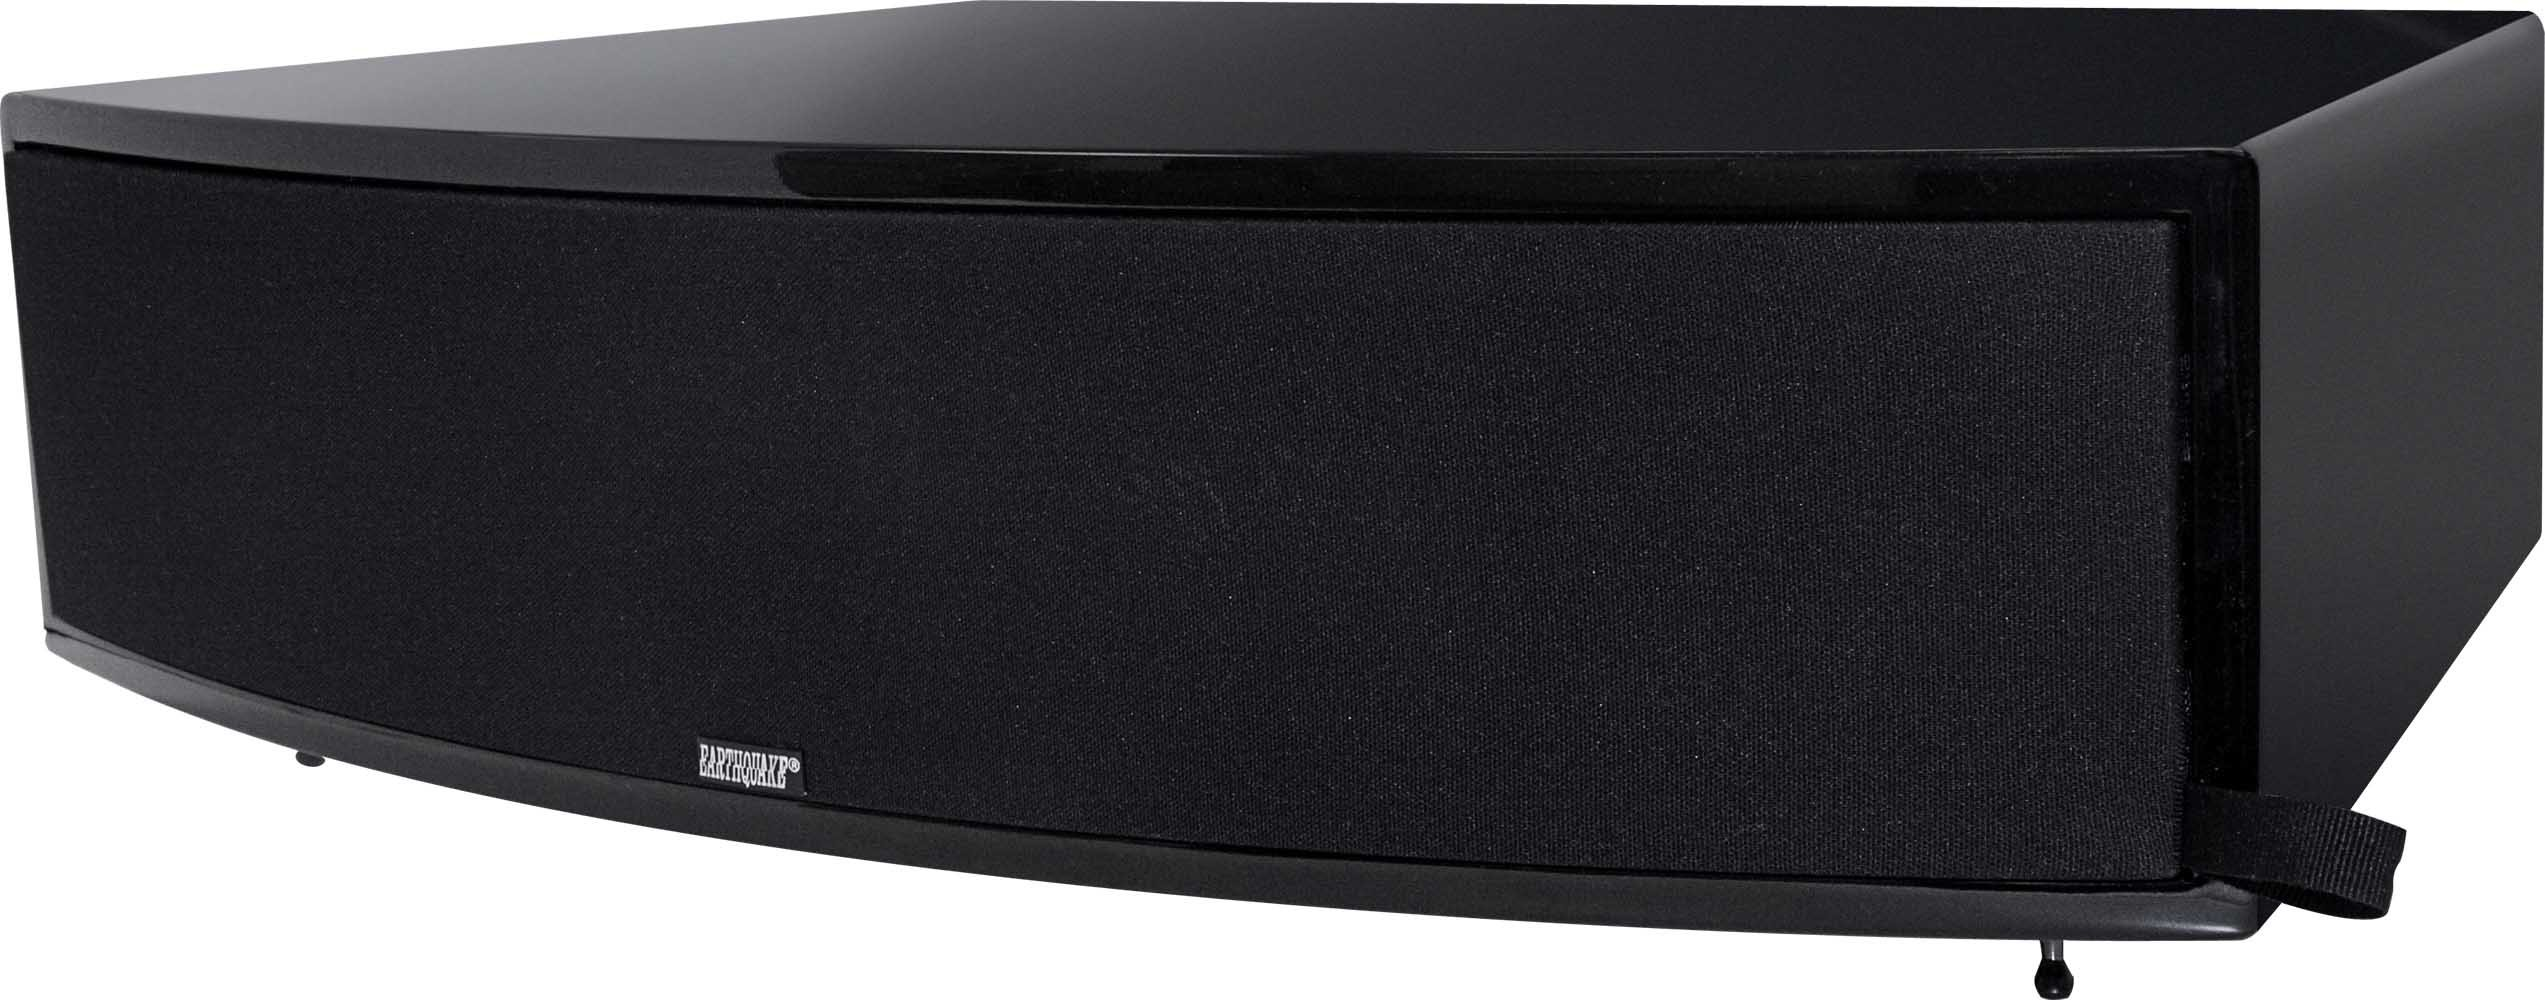 Earthquake Sound Titan Theia Curved Cabinet Center Channel Speaker, Single - Piano Black by Earthquake Sound